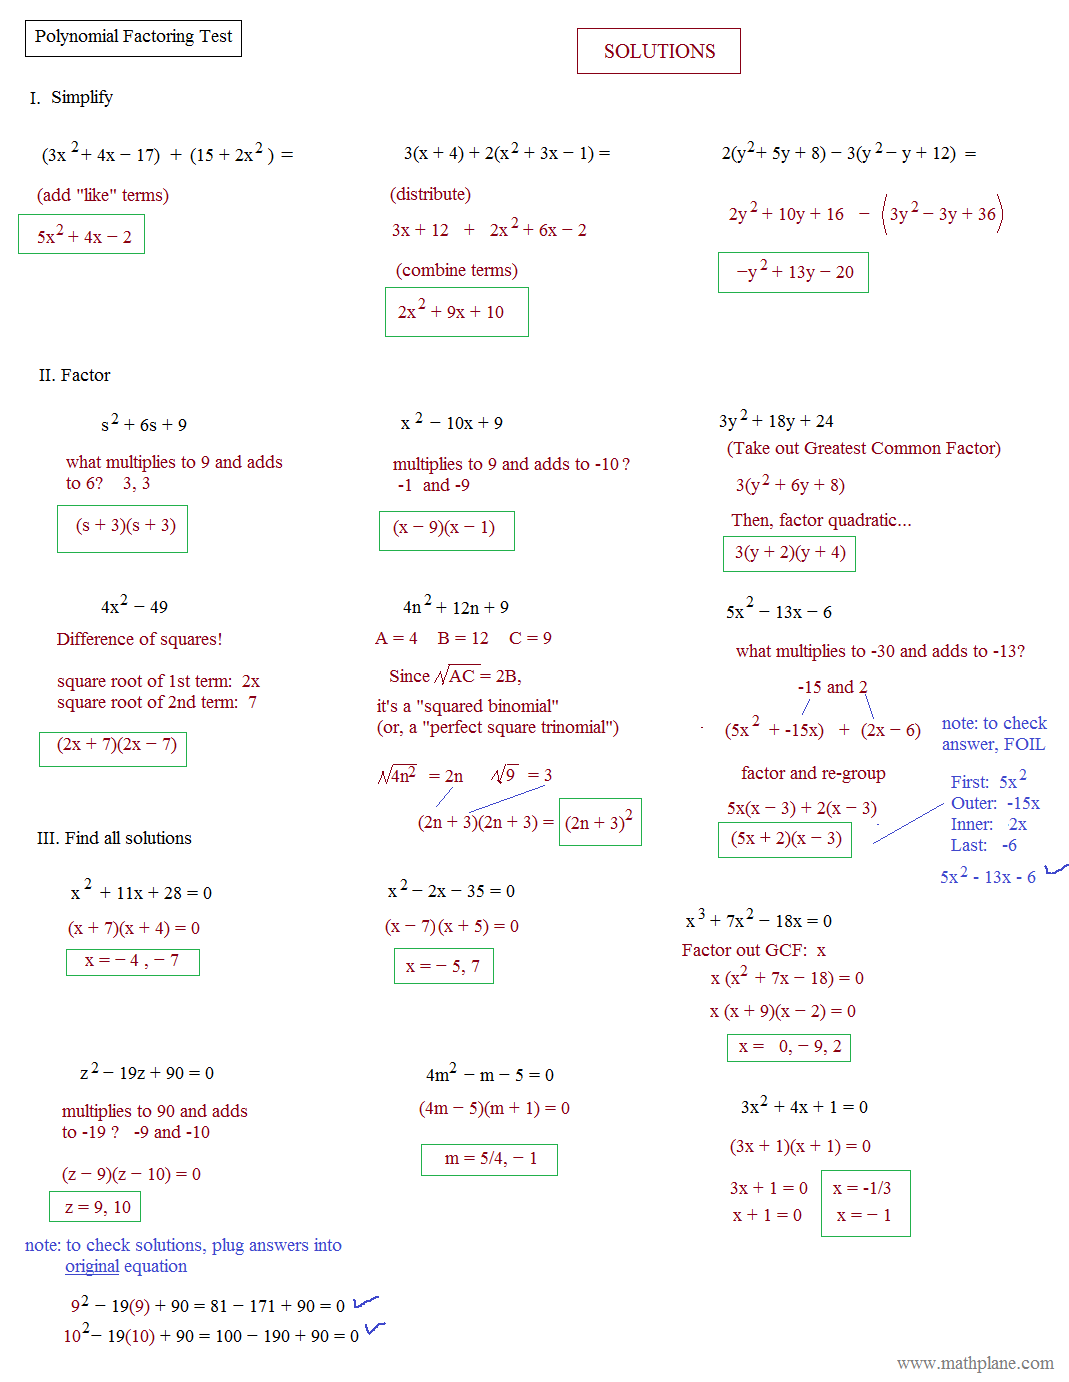 worksheet Factoring Polynomials Completely Worksheet homework help factoring polynomials precalculus review worksheet answers intrepidpath math plane simplifying rational polynomials